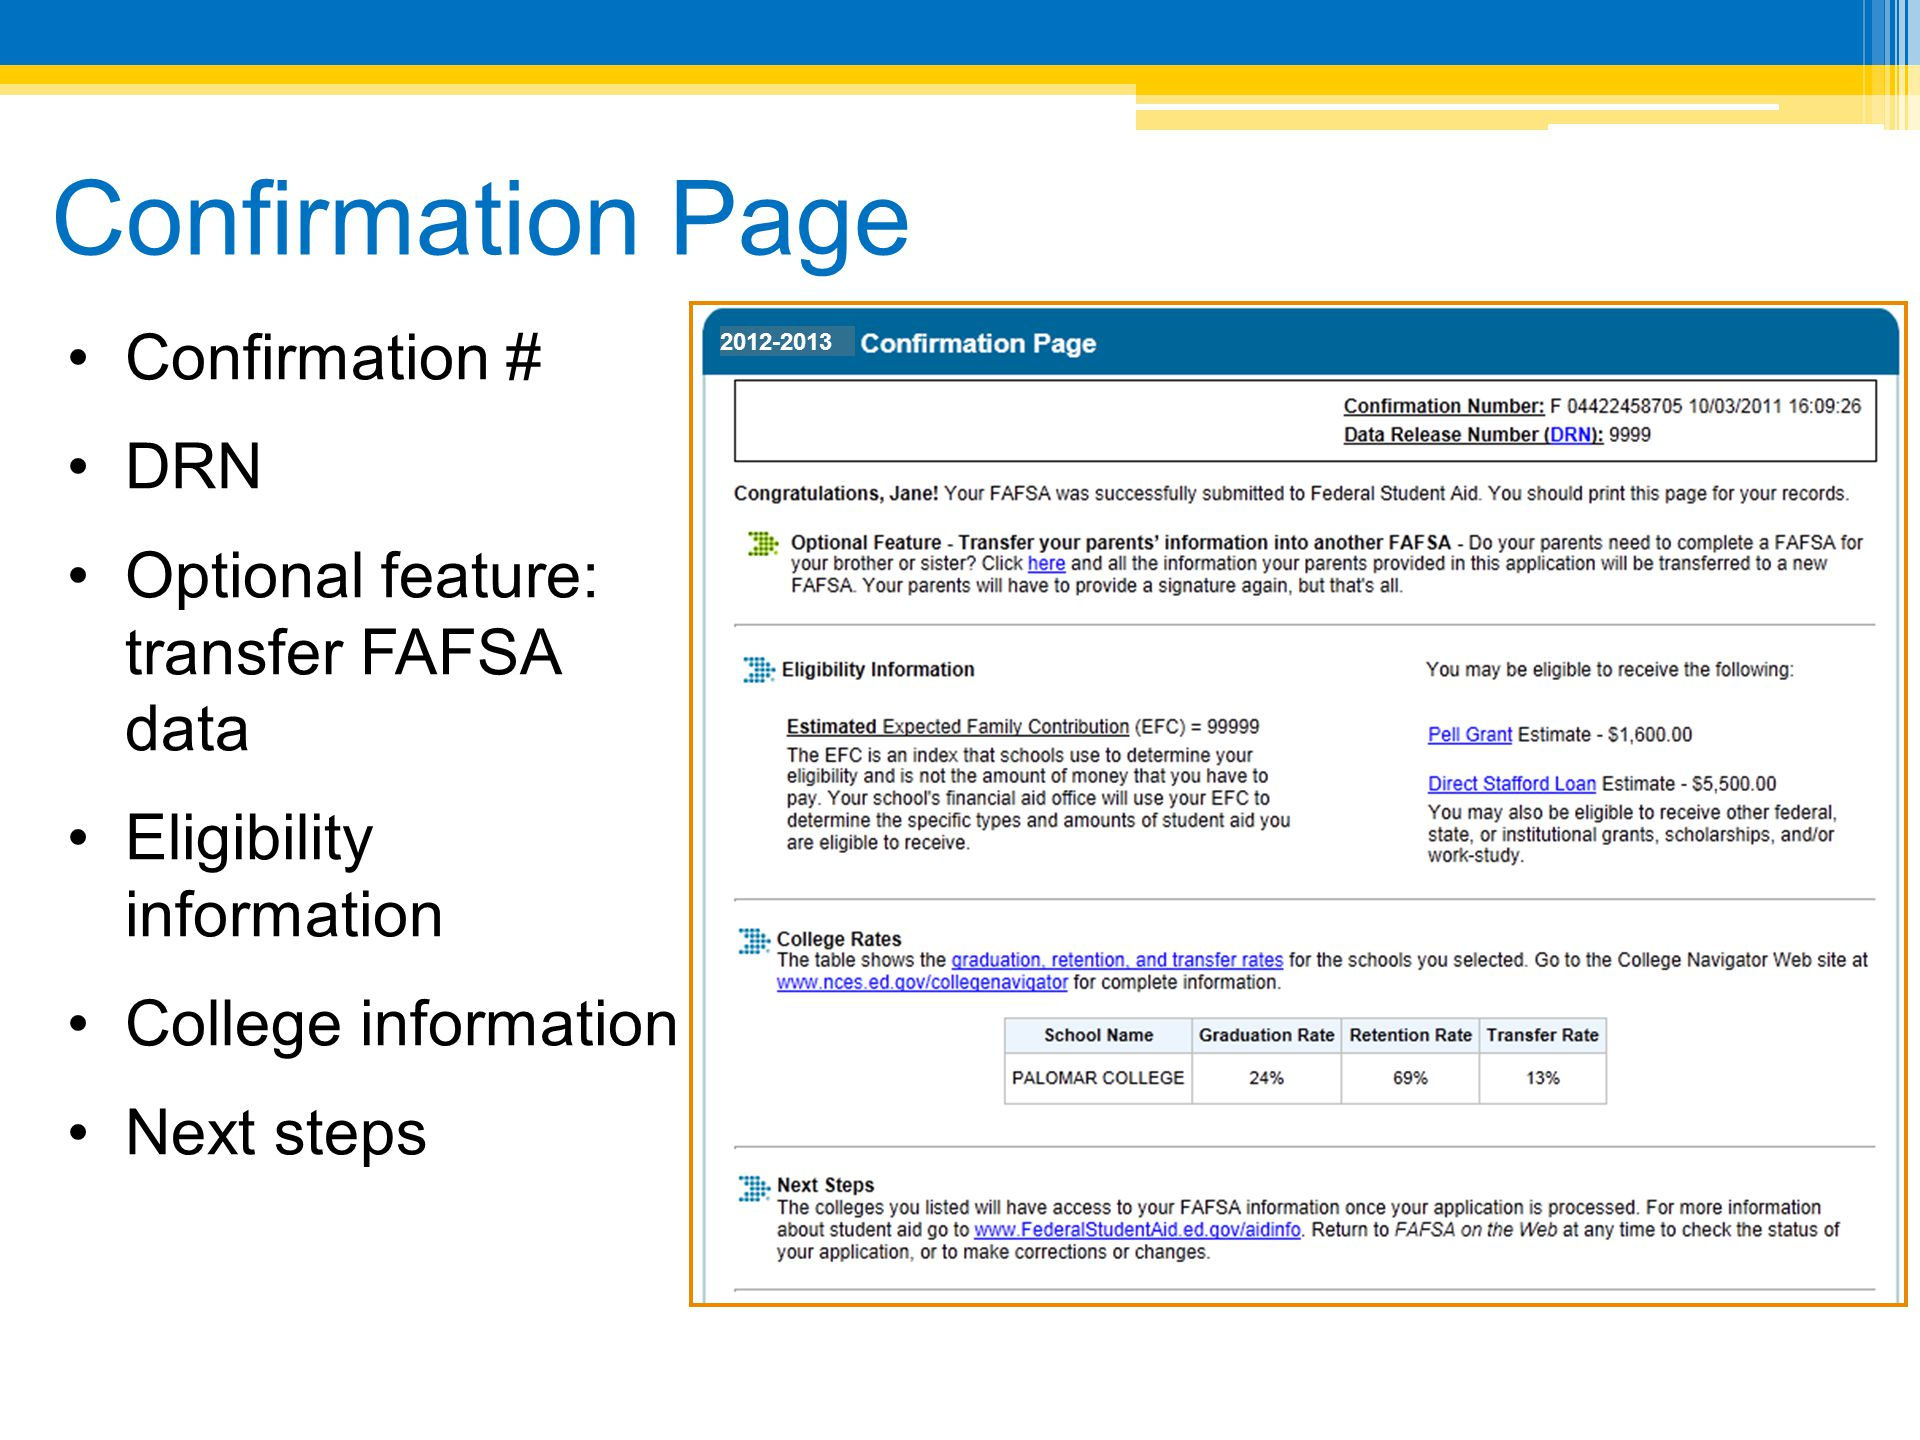 Confirmation Page Confirmation # DRN Optional feature: transfer FAFSA data Eligibility information College information Next steps 2012-2013